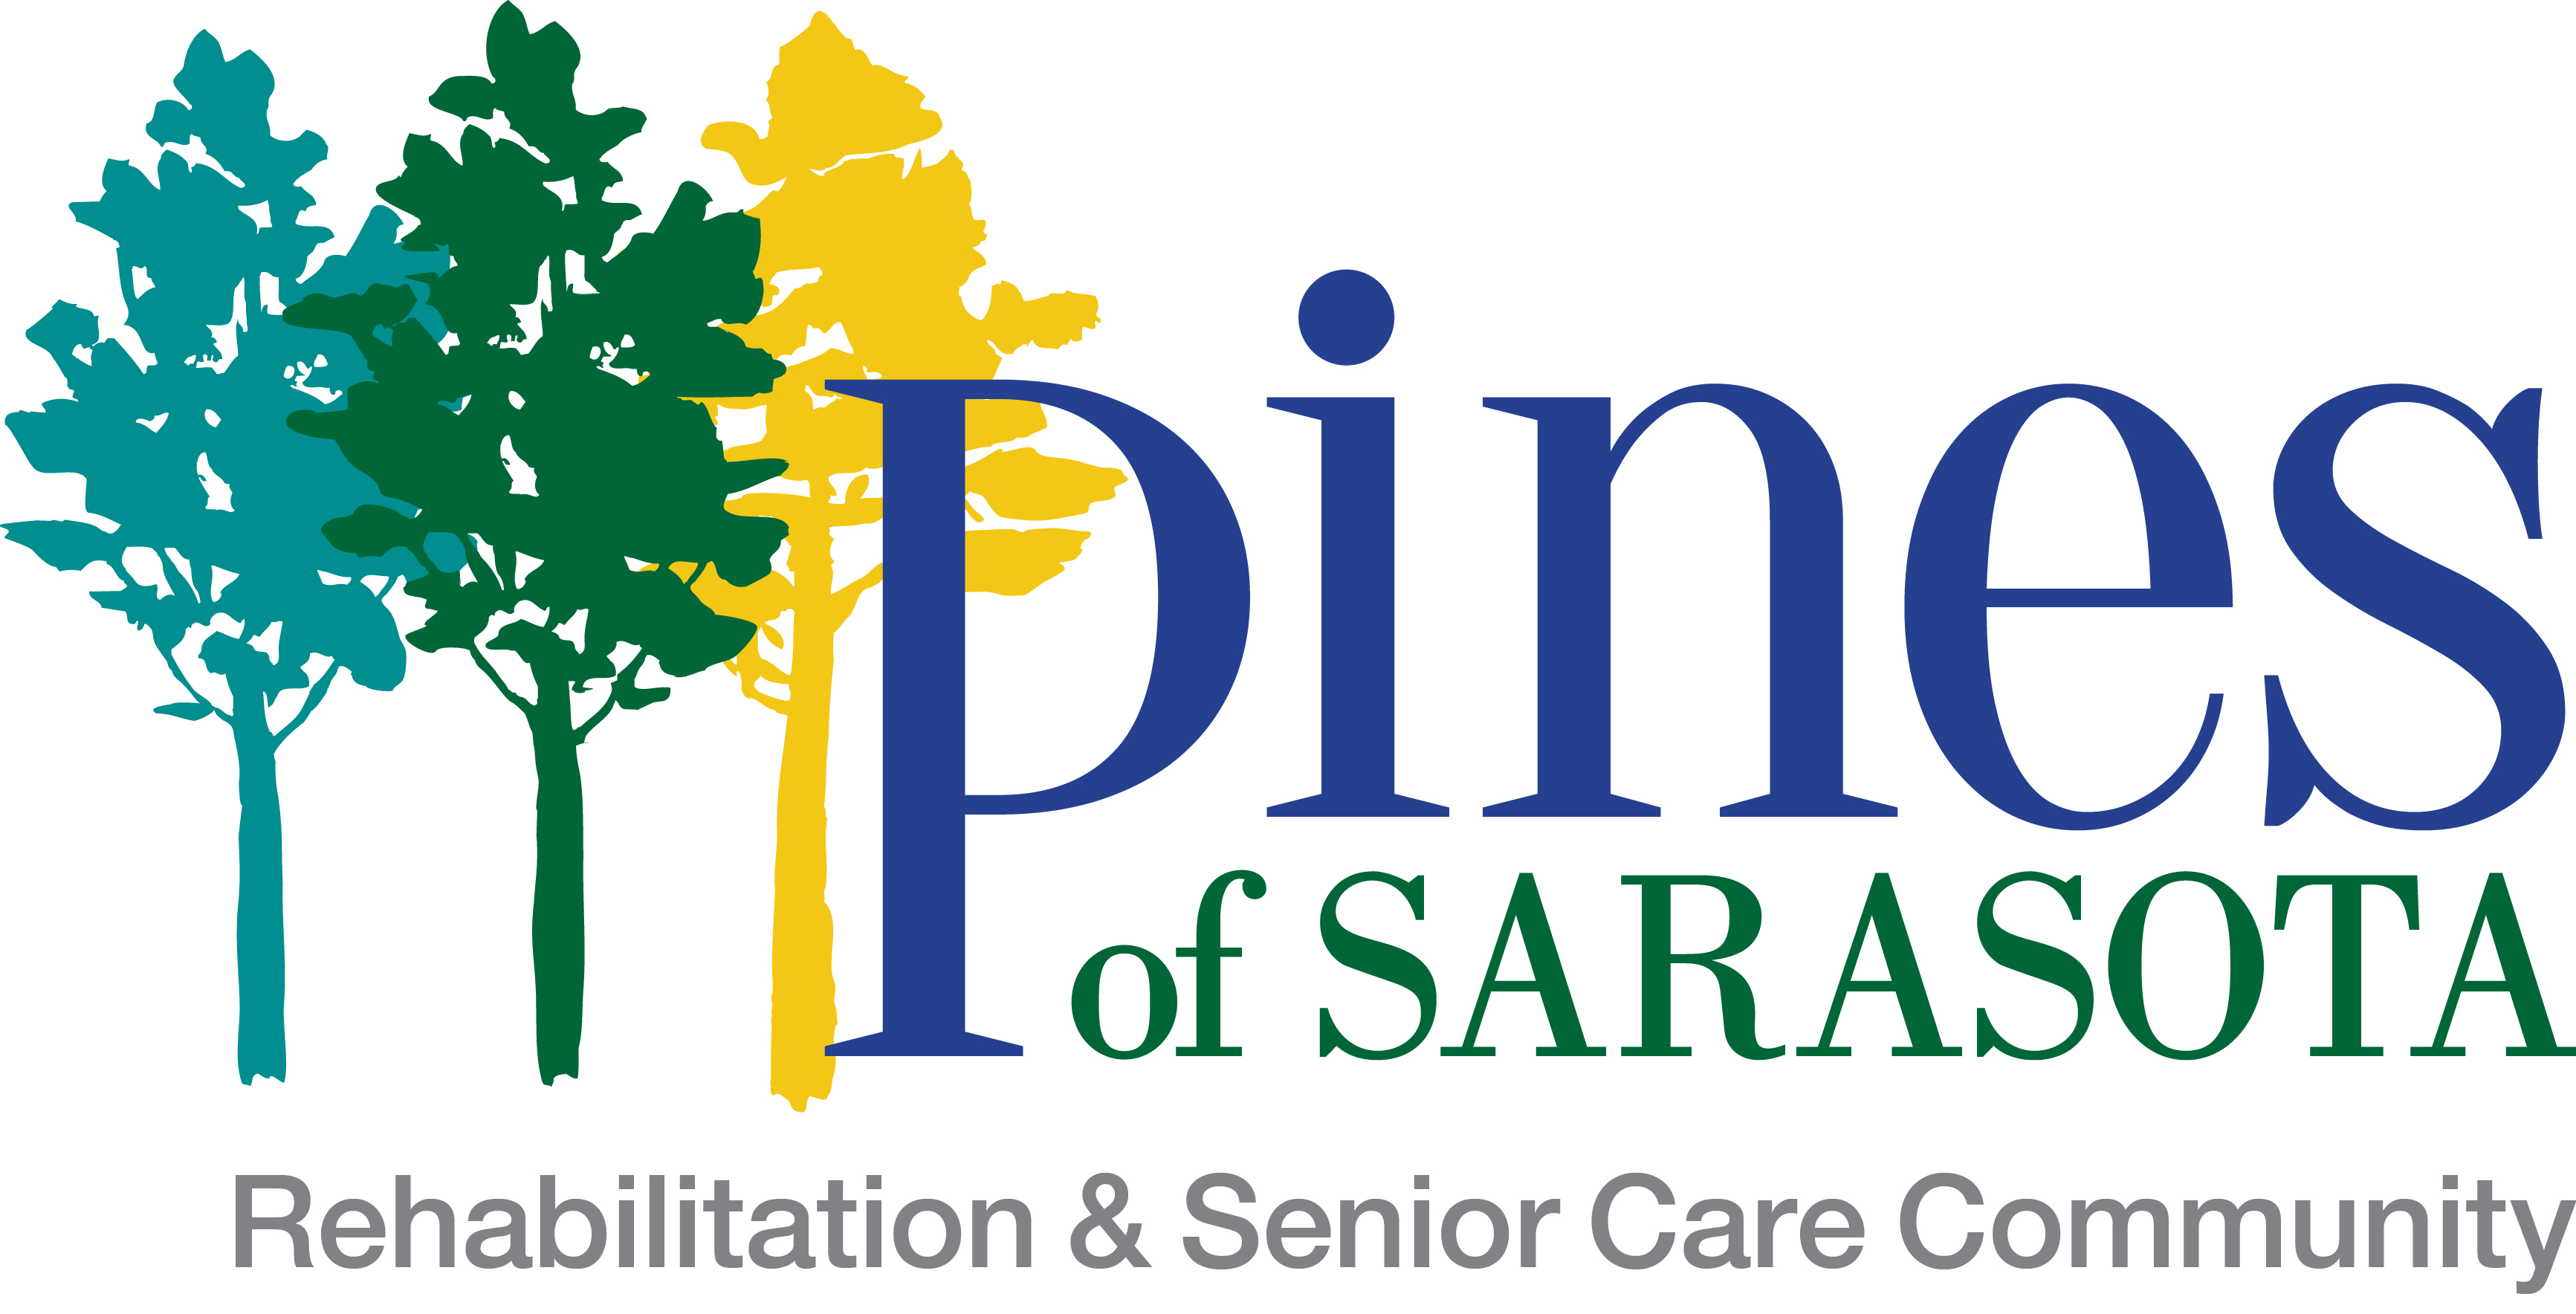 sarasota senior personals Florida senior sarasota catholic women we offer a truly catholic environment, thousands of members, and highly compatible matches based on your personality, shared faith, and lifestyle.